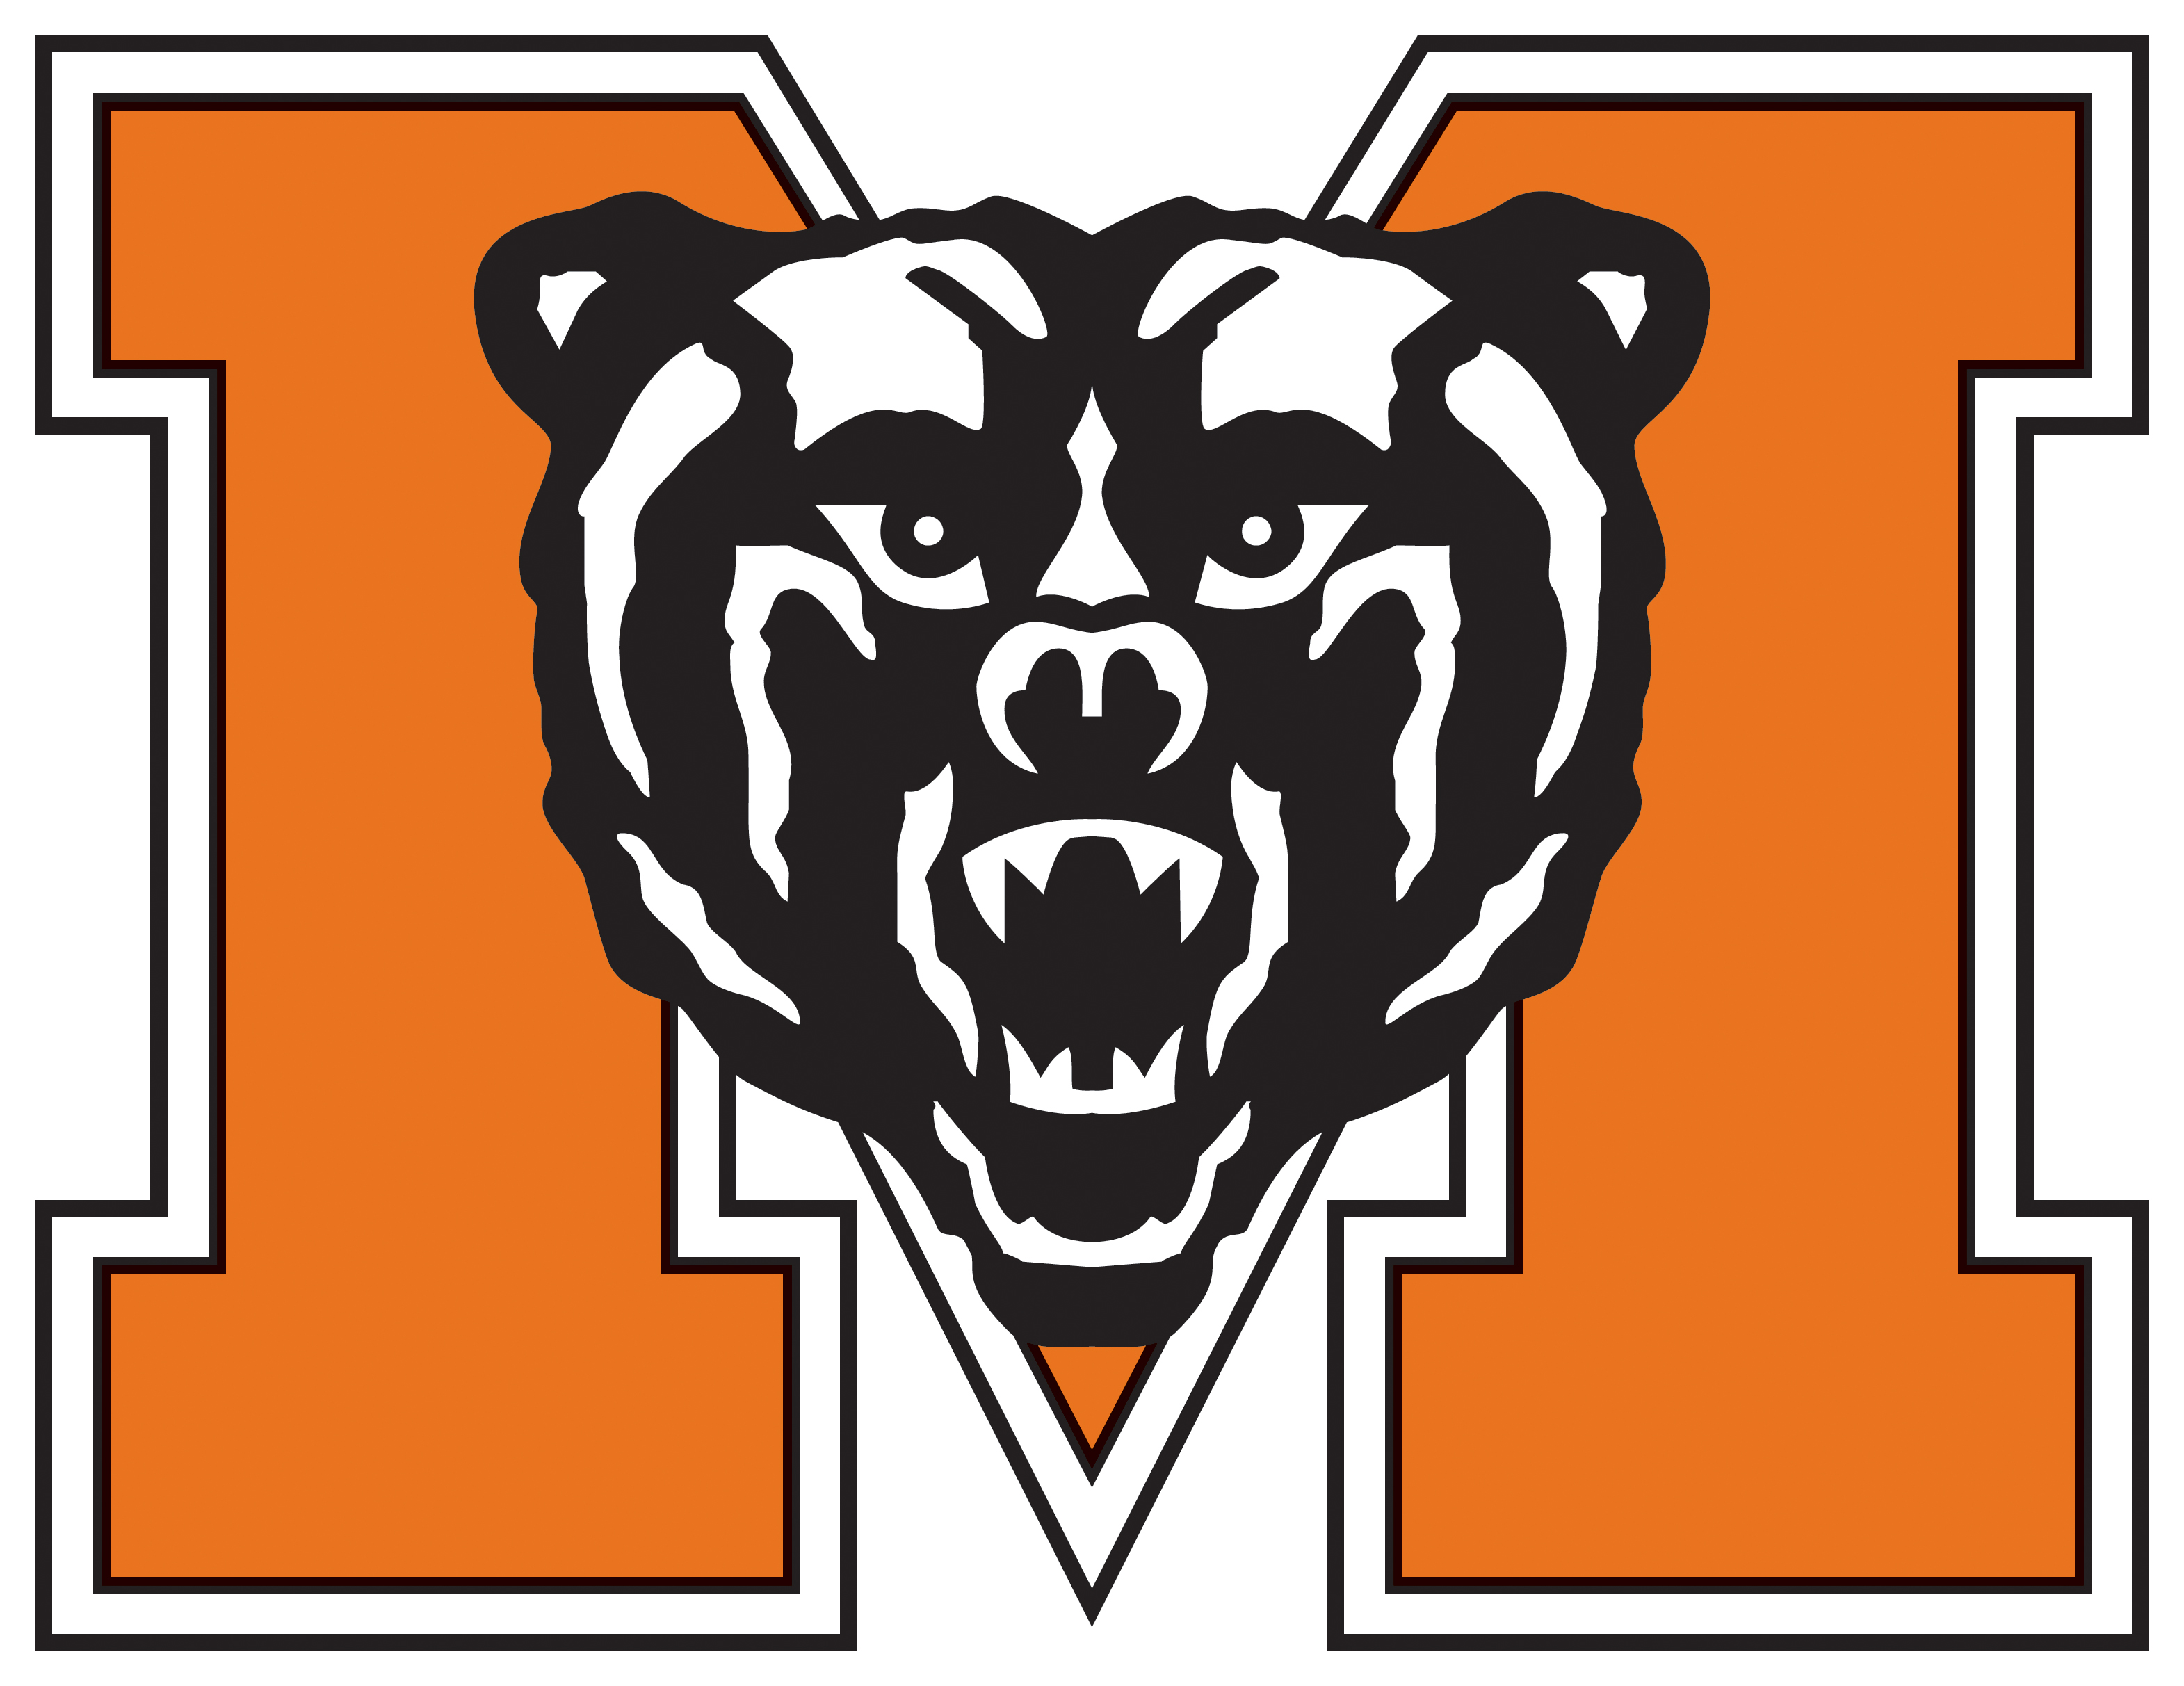 mercer university bears logo